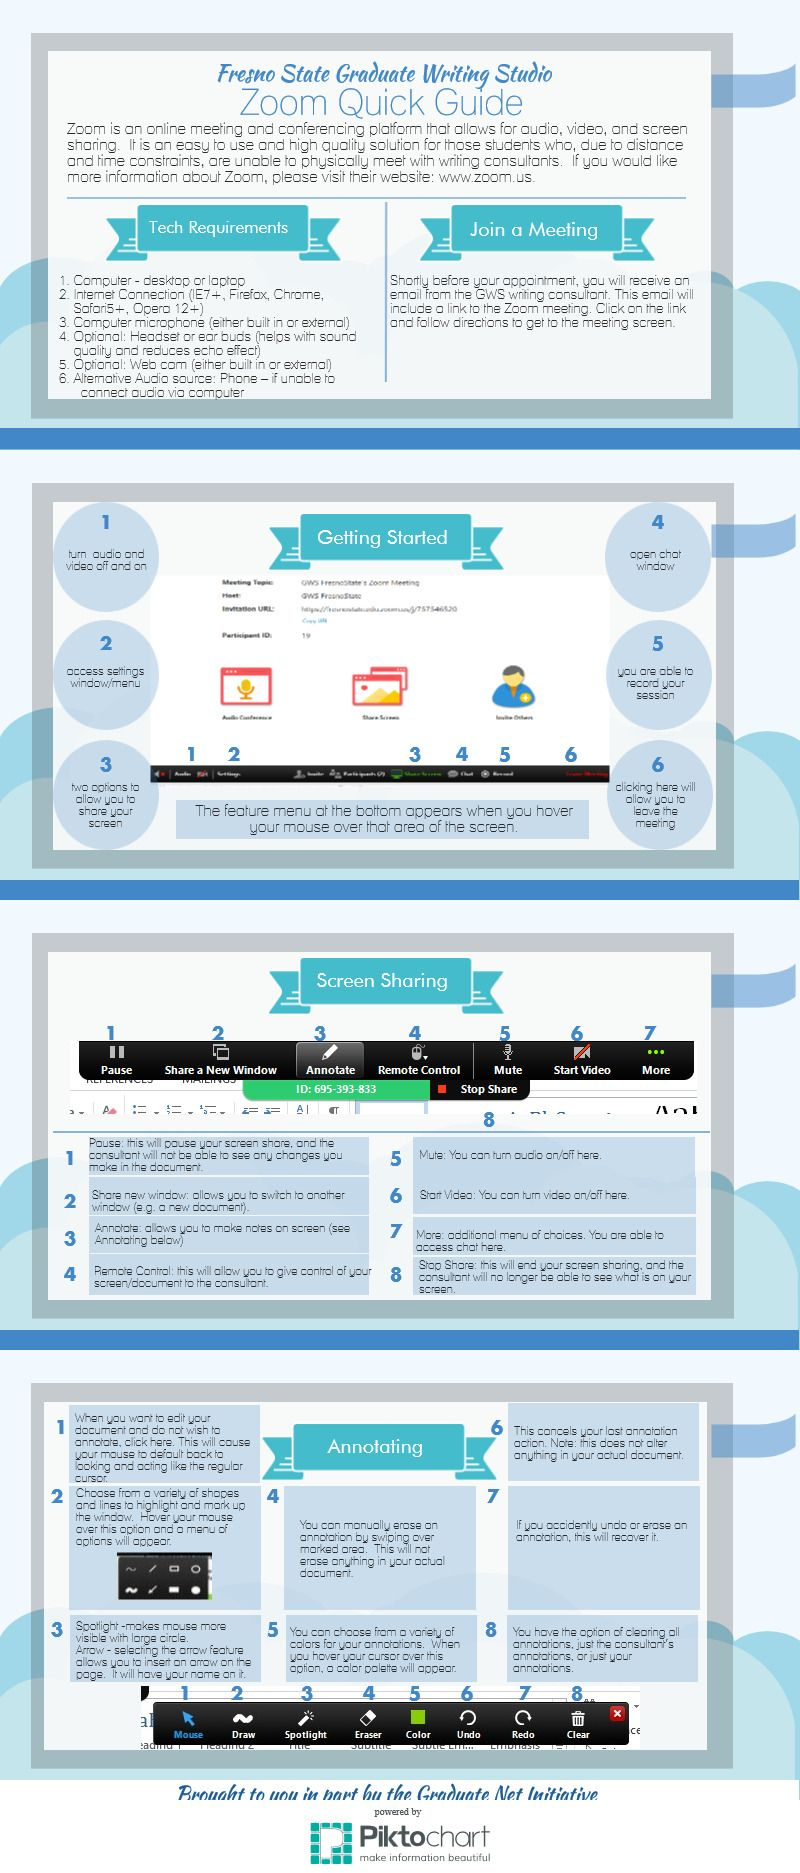 Zoom Quick Guide   @Piktochart Infographic   Technology